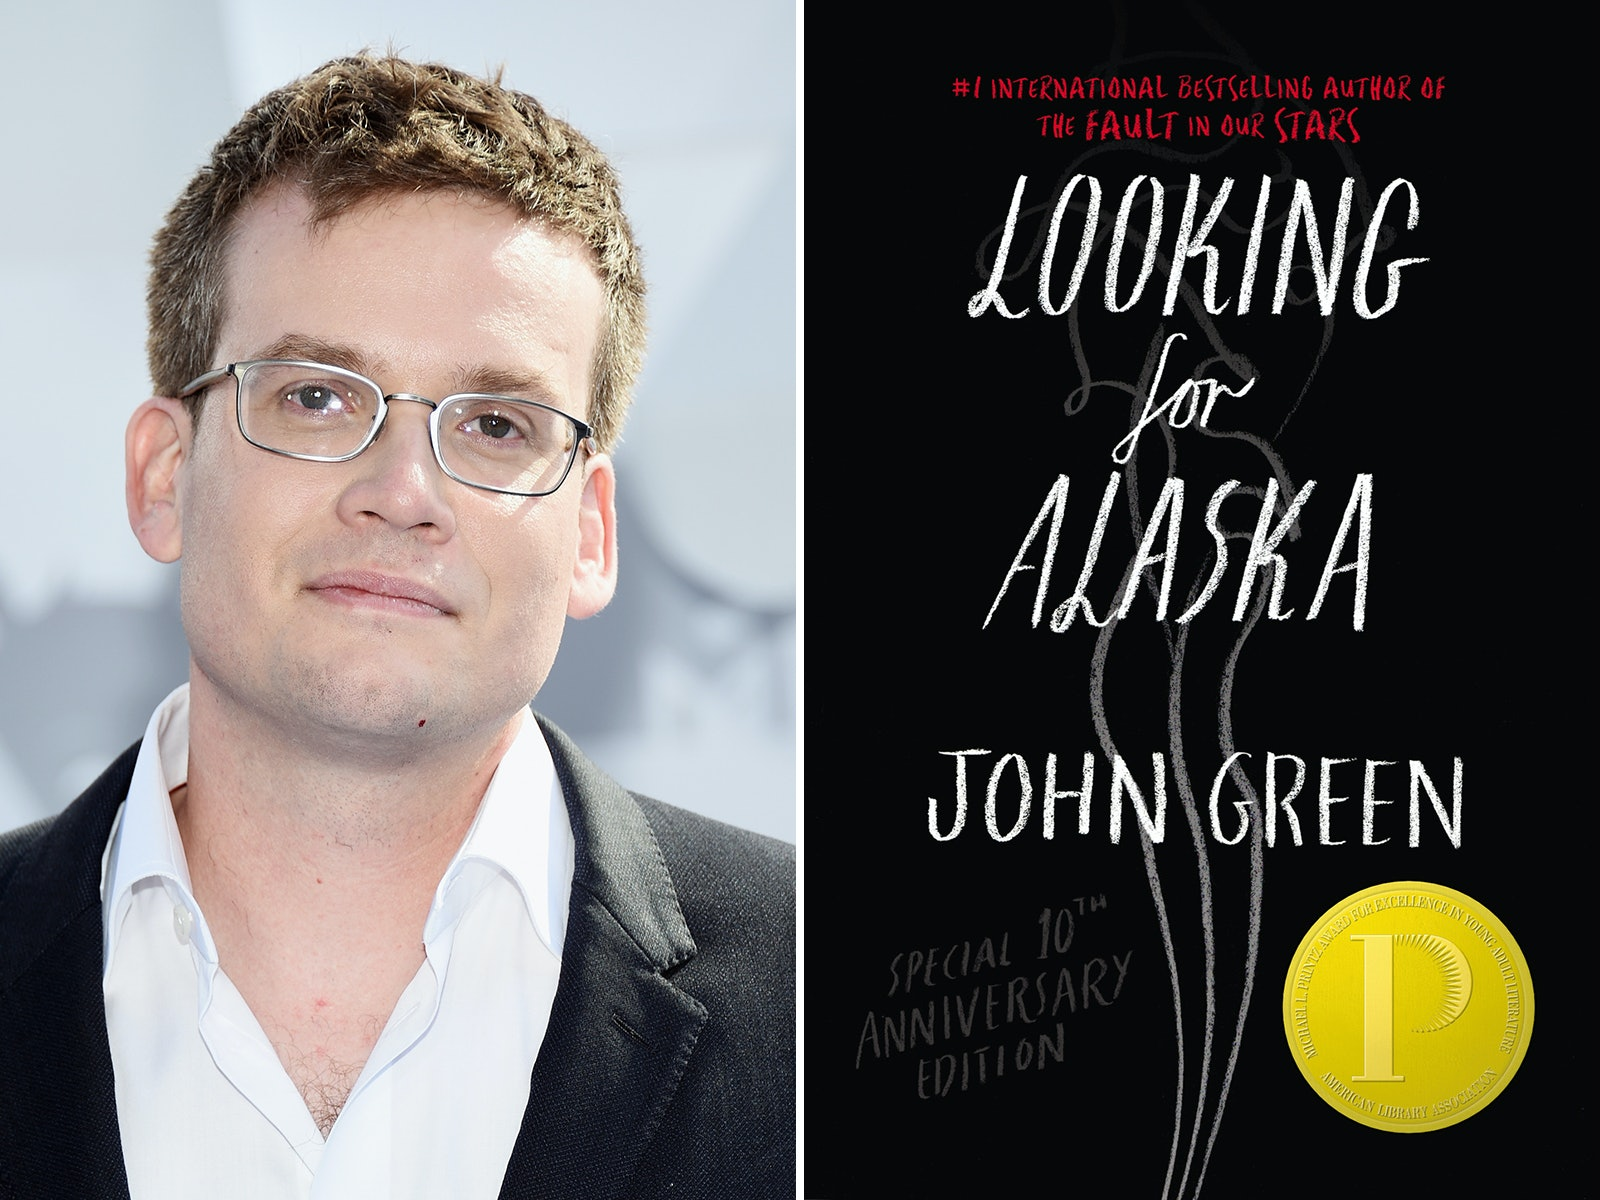 Hulu's Looking for Alaska Trailer - Adapted from the Novel by John Green